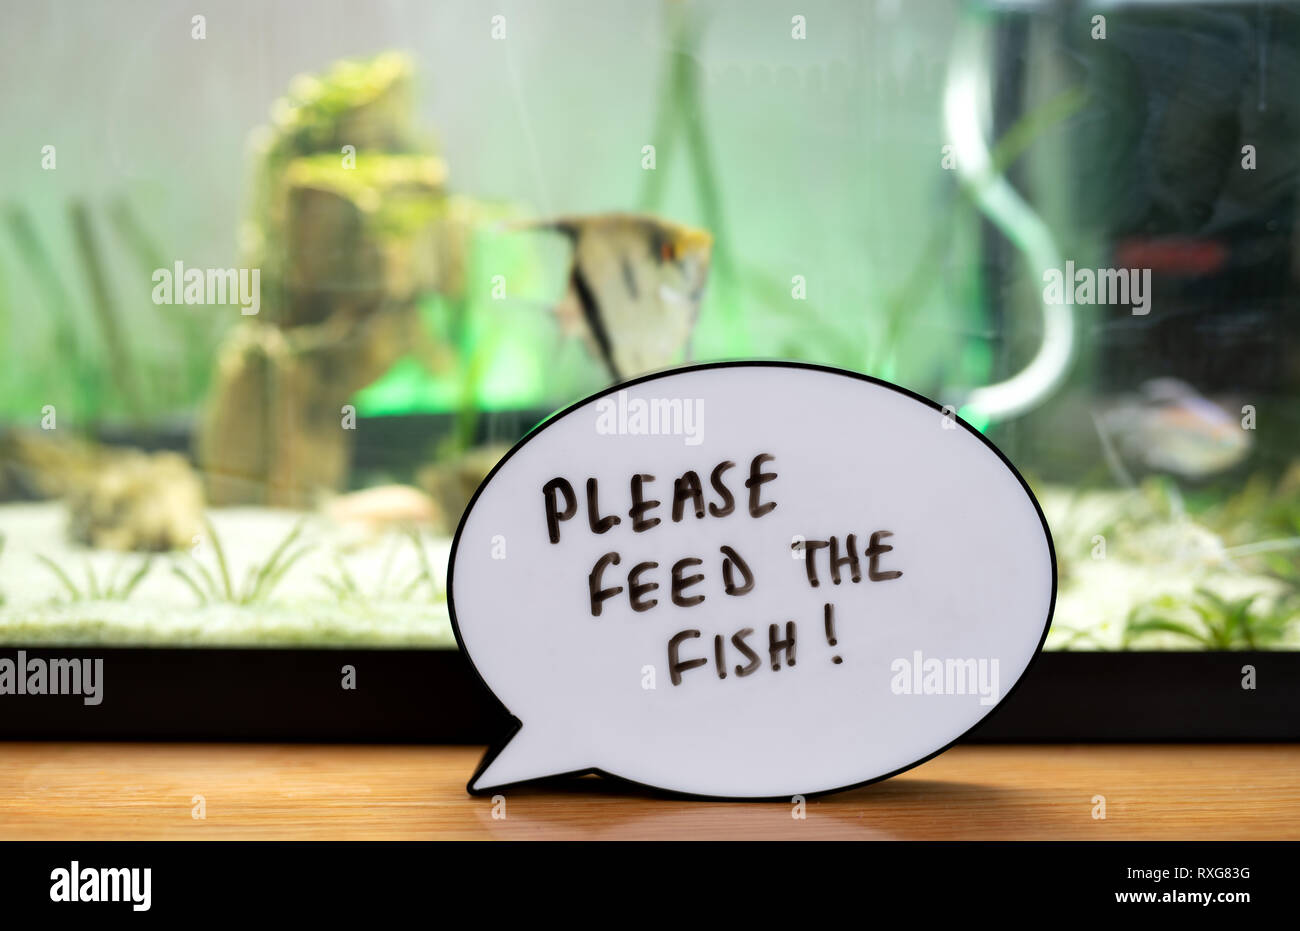 Written reminder to please feed the fish in front of fish tank - Stock Image